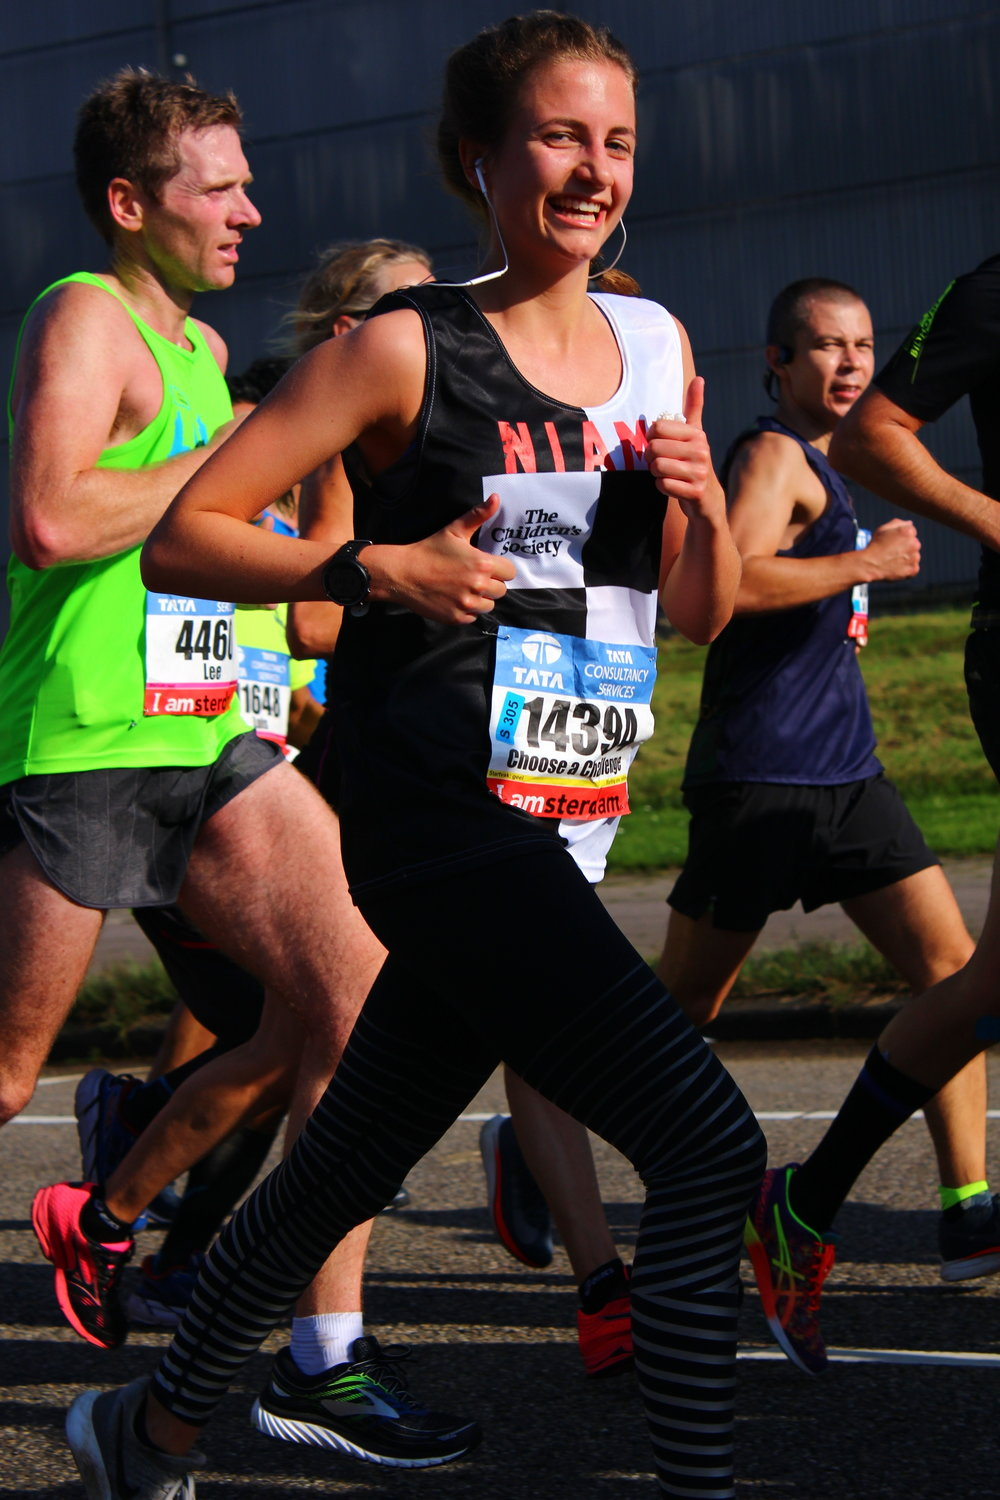 Photo by Felix Bailey on Amsterdam Marathon 2017